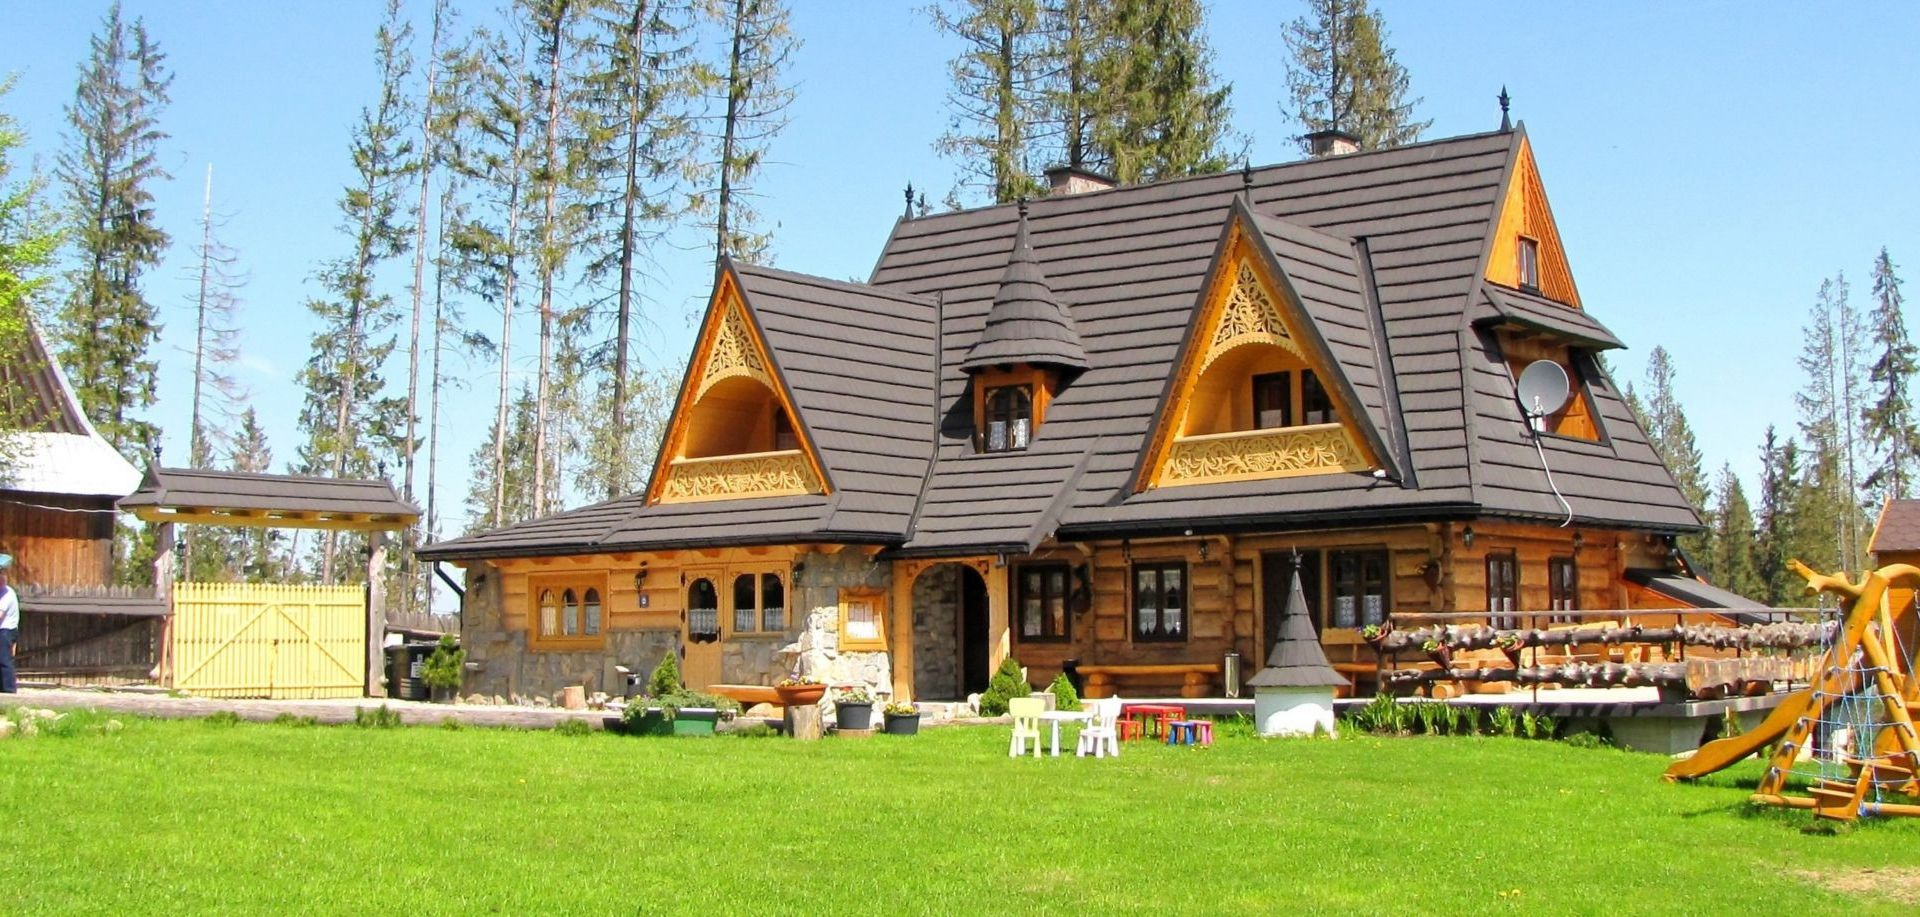 Bajkowa Chata Cottages With Atmosphere And Soul At An